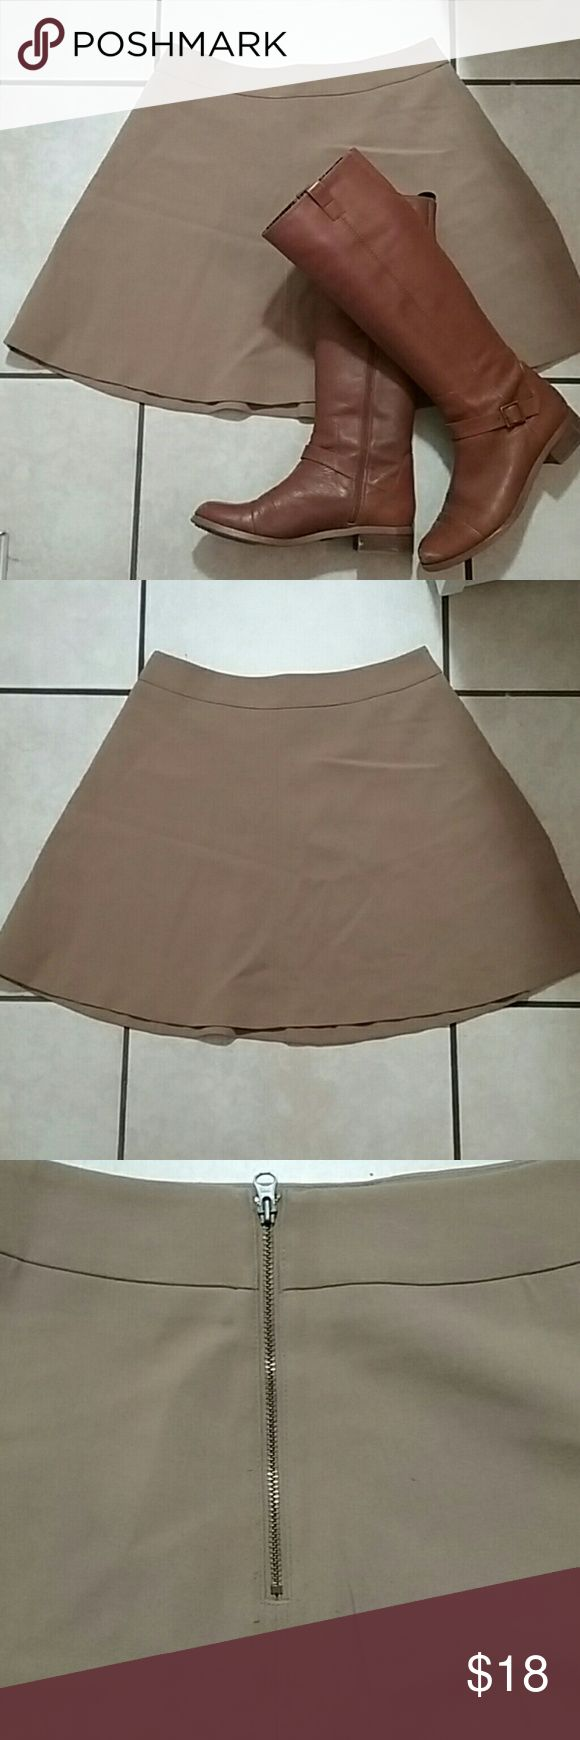 LOFT camel colored circle skirt LOFT camel colored circle skirt with exposed back zip. Sits at the waist and hits about 4 inches above knee. Some pilling at the butt area (see pics), overall euc. LOFT Skirts Mini